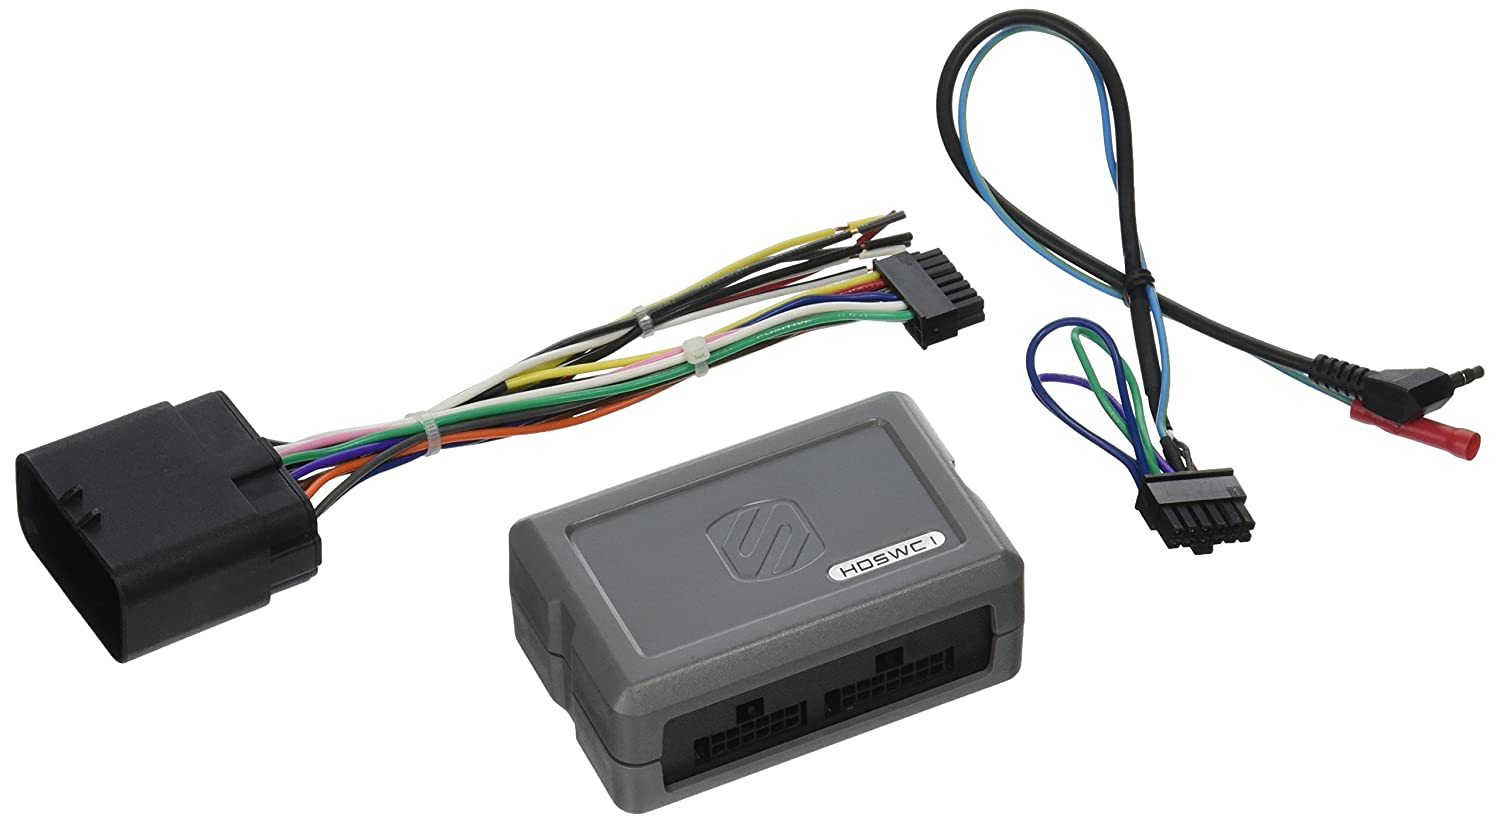 Scosche Hdswc1 1998 Up Harley Davidson Handle Bar Wiring Harness Box S Controls Retention Interface Car Electronics